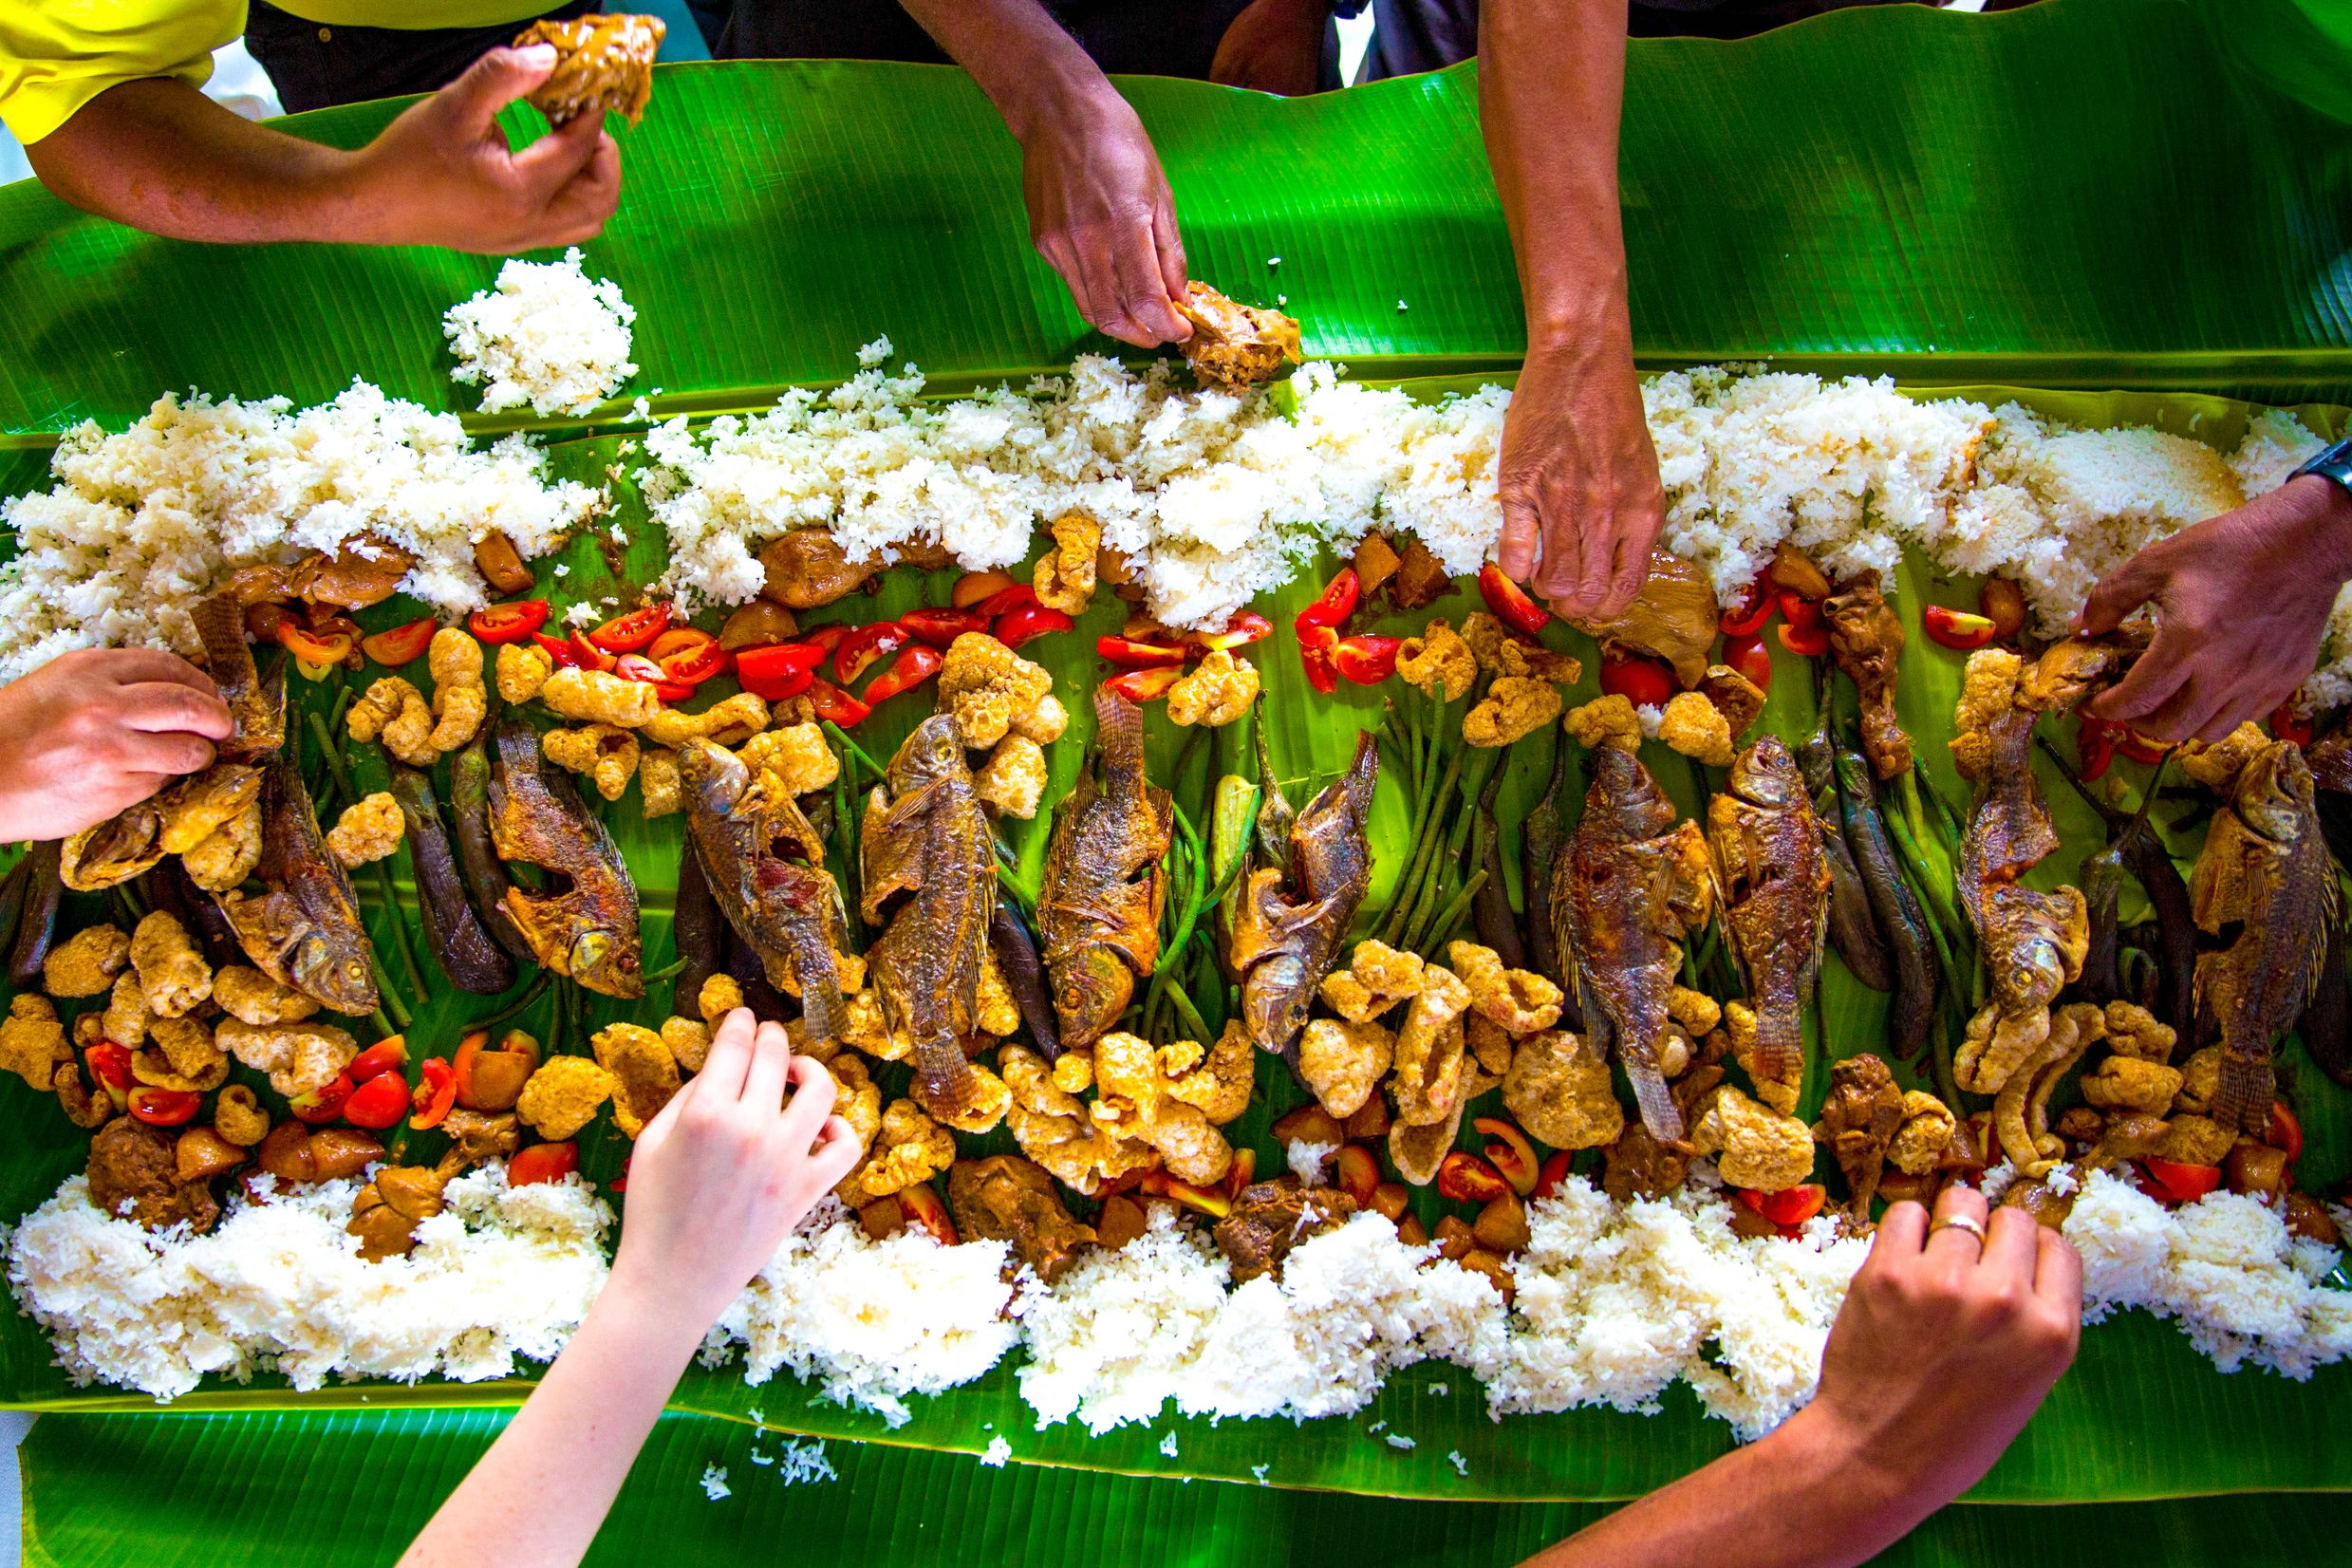 top view of hands getting food from a banquet laid out on banana leaves in a traditional Filipino 'boodle'